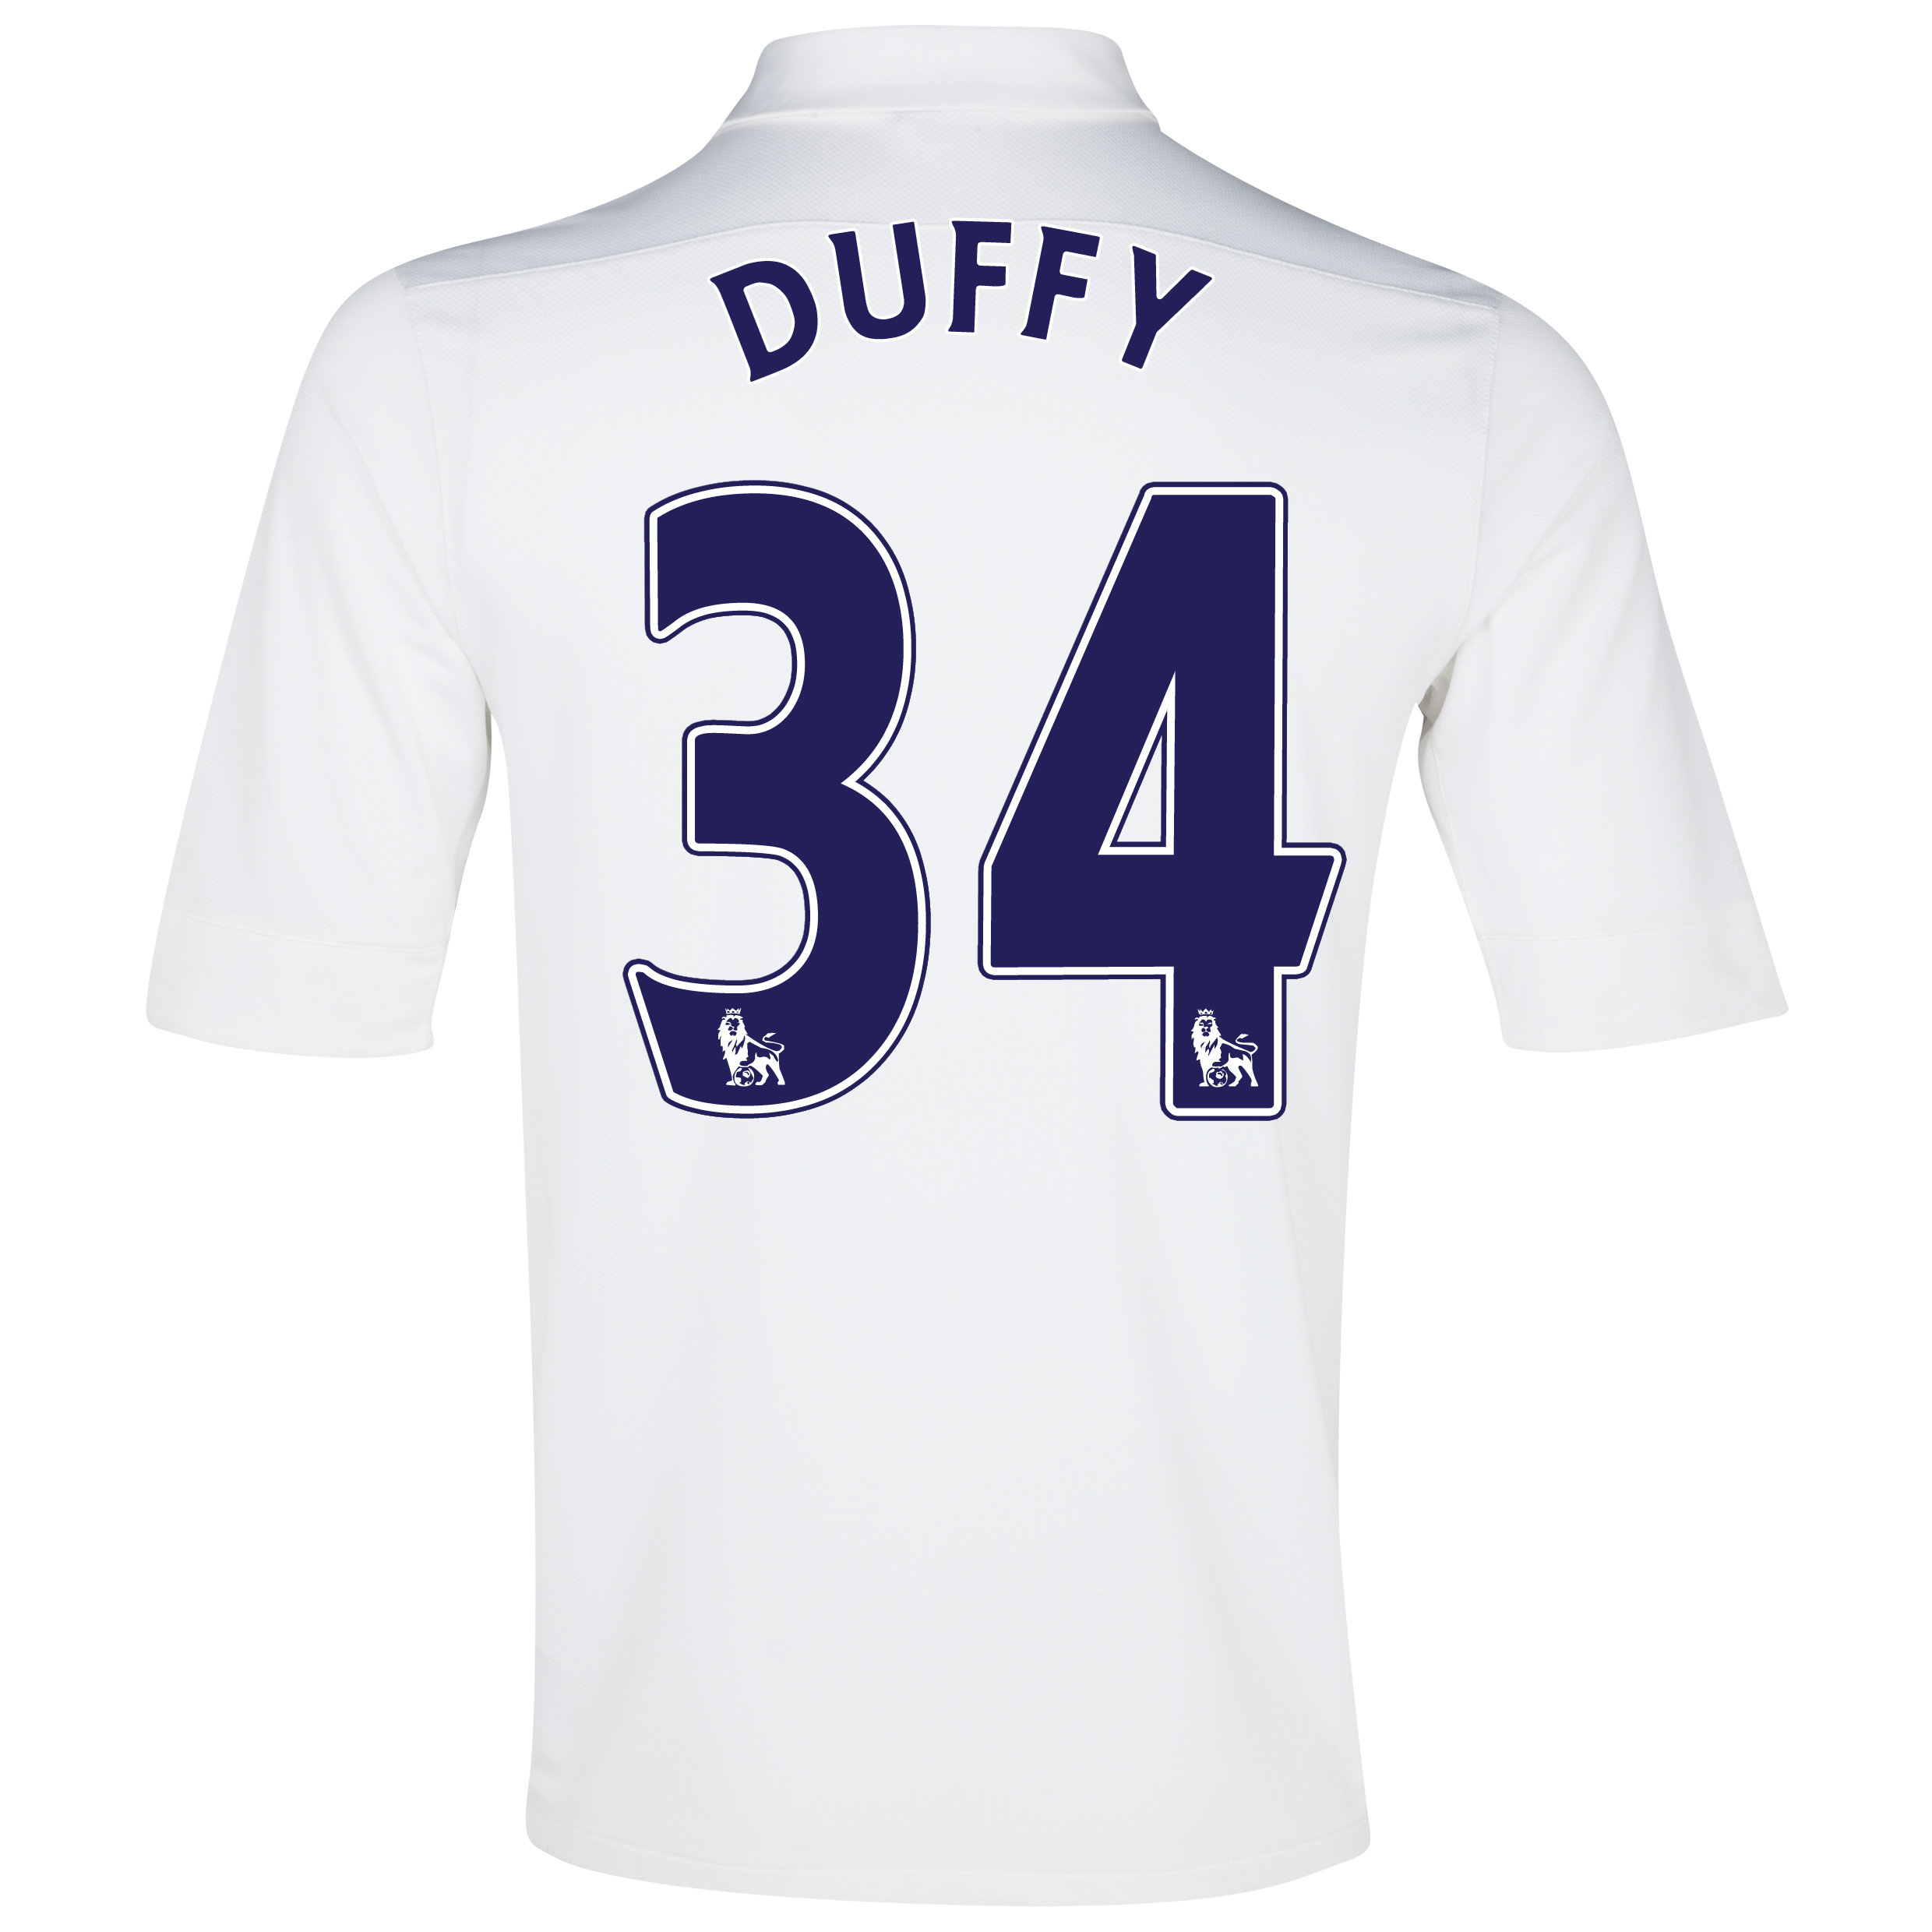 Everton 3rd Shirt 2012/13 with Duffy 34 printing